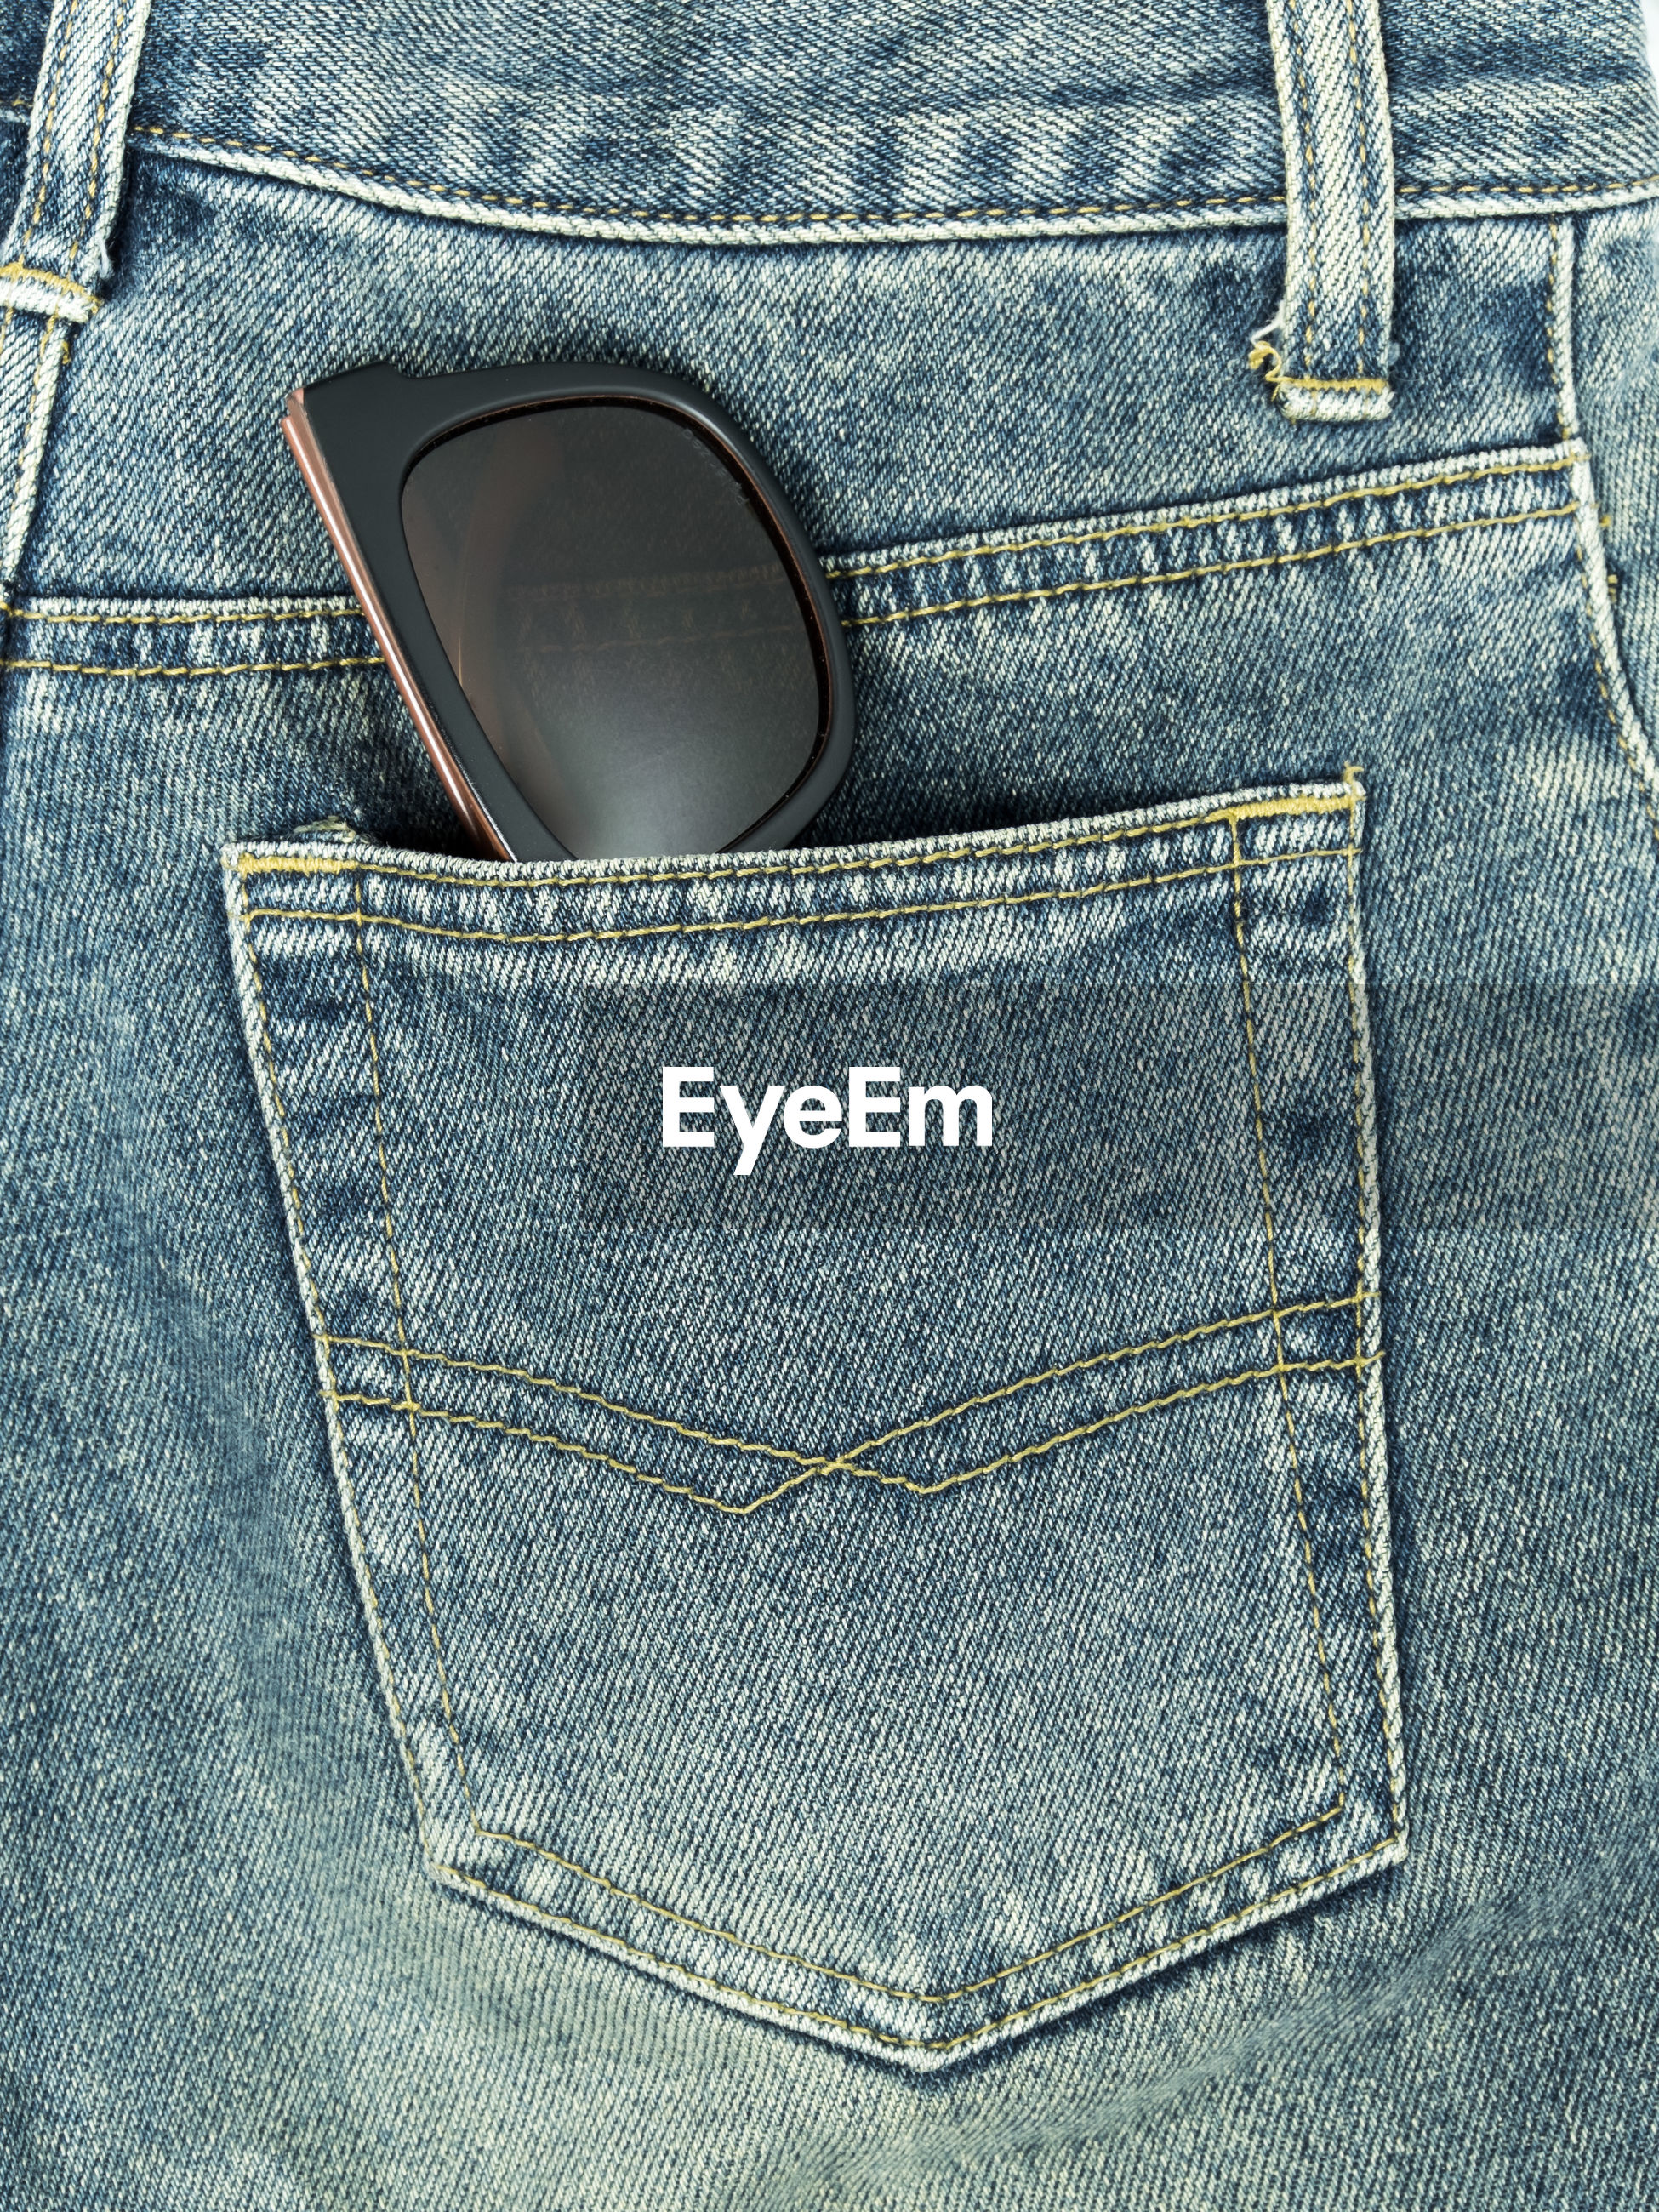 Sunglasses in jeans pocket